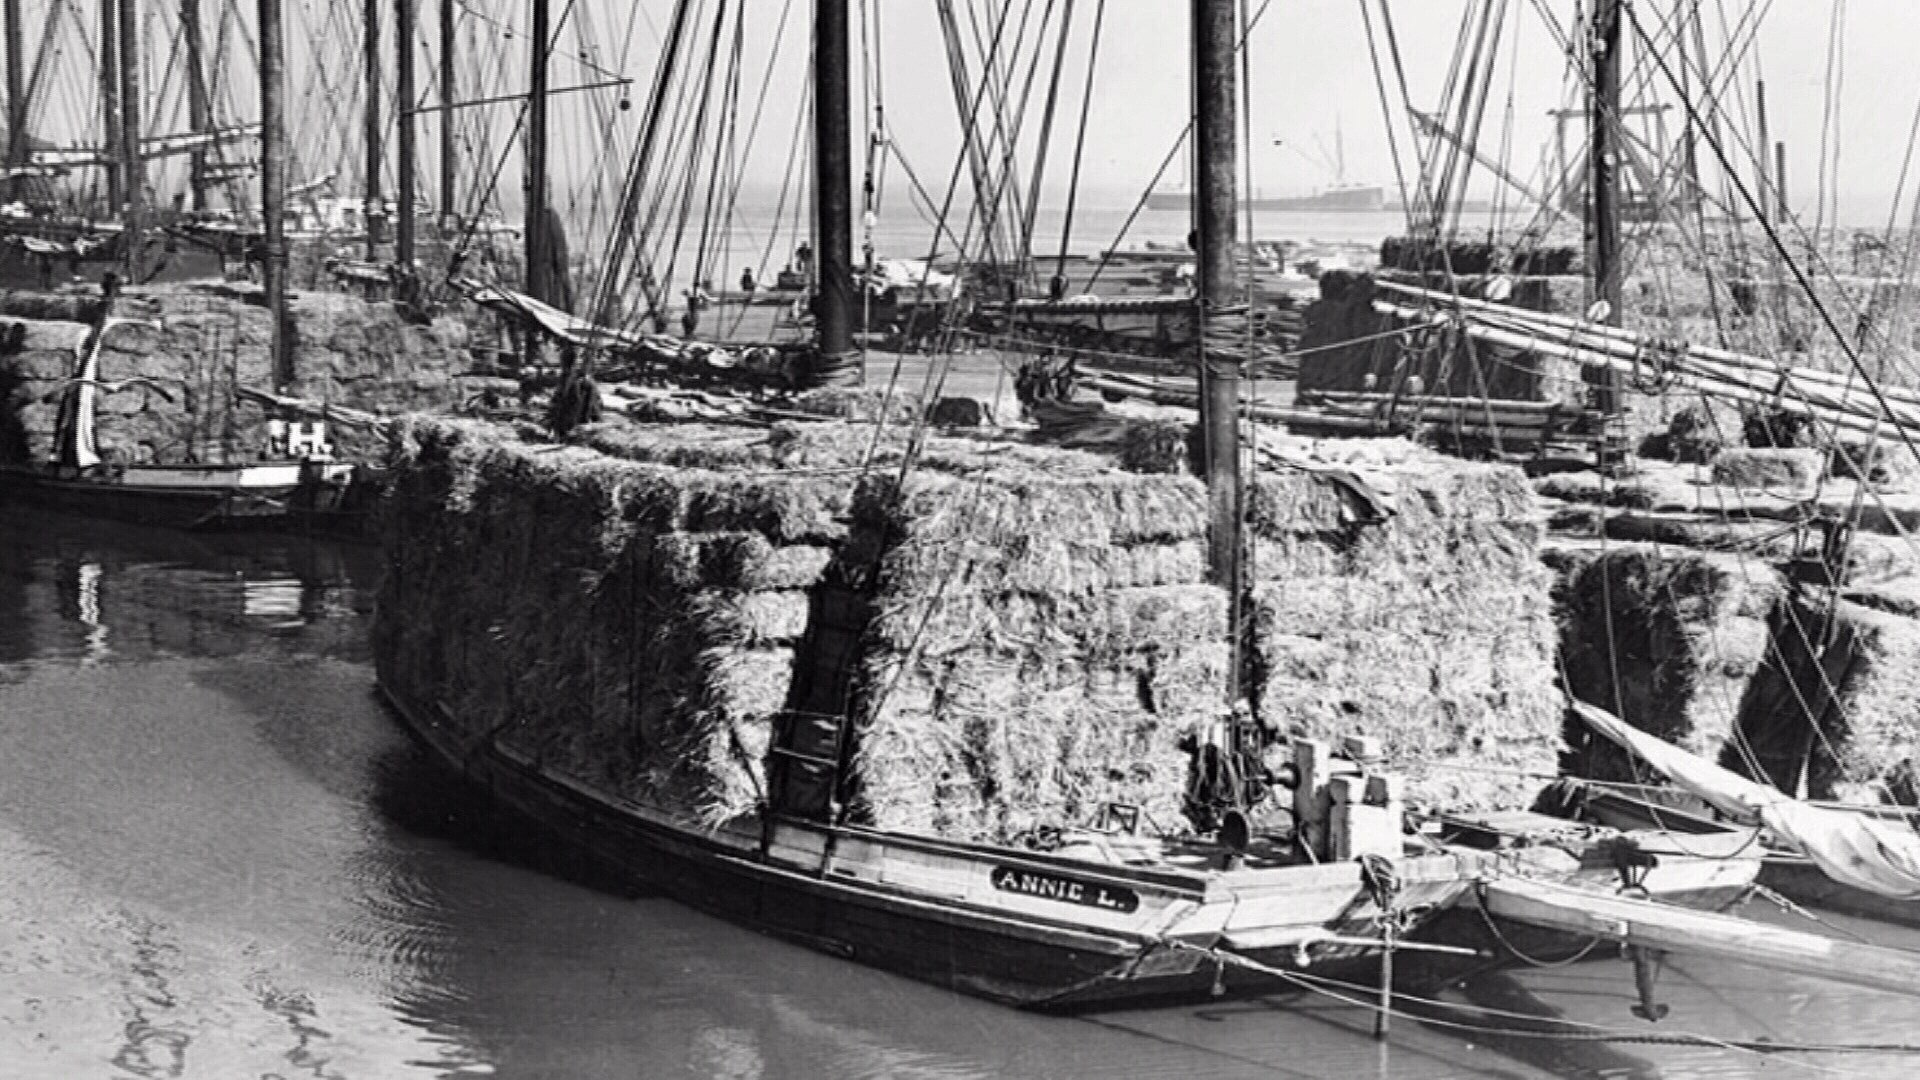 A scow schooner in the 1870's loaded with cargo